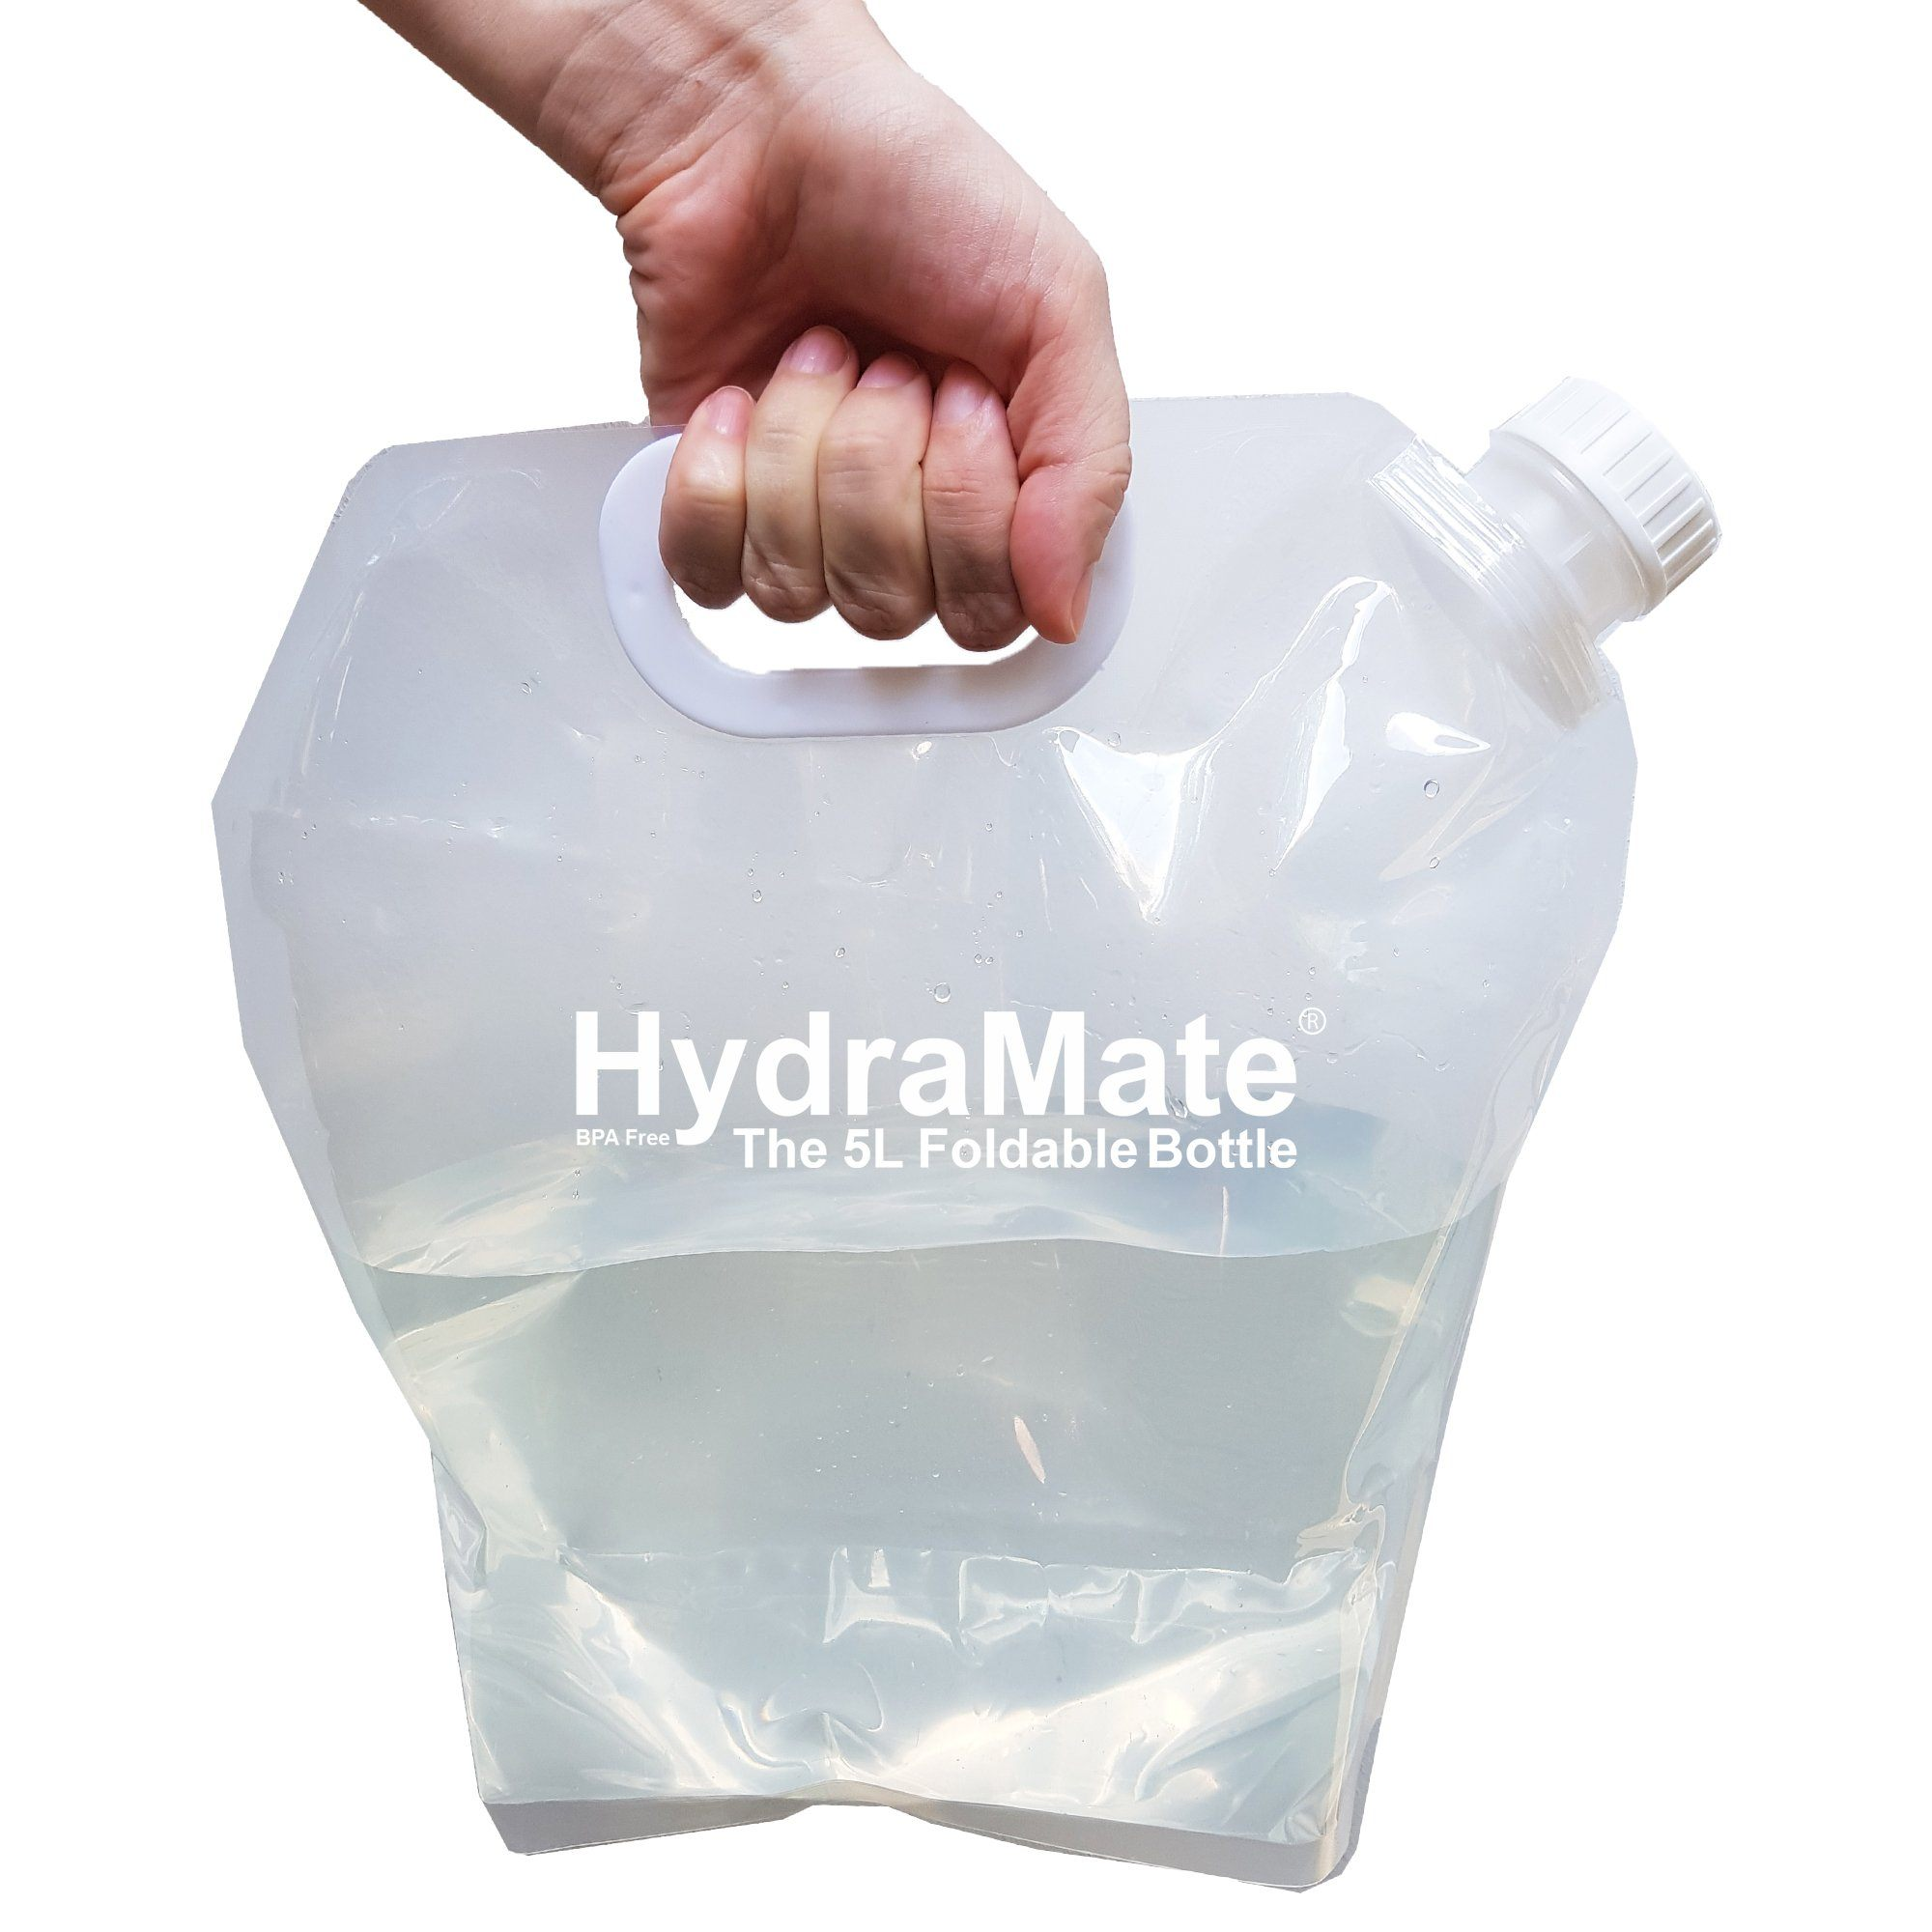 HydraMate 5L Foldable Bottle Pack of 2. BPA Free.